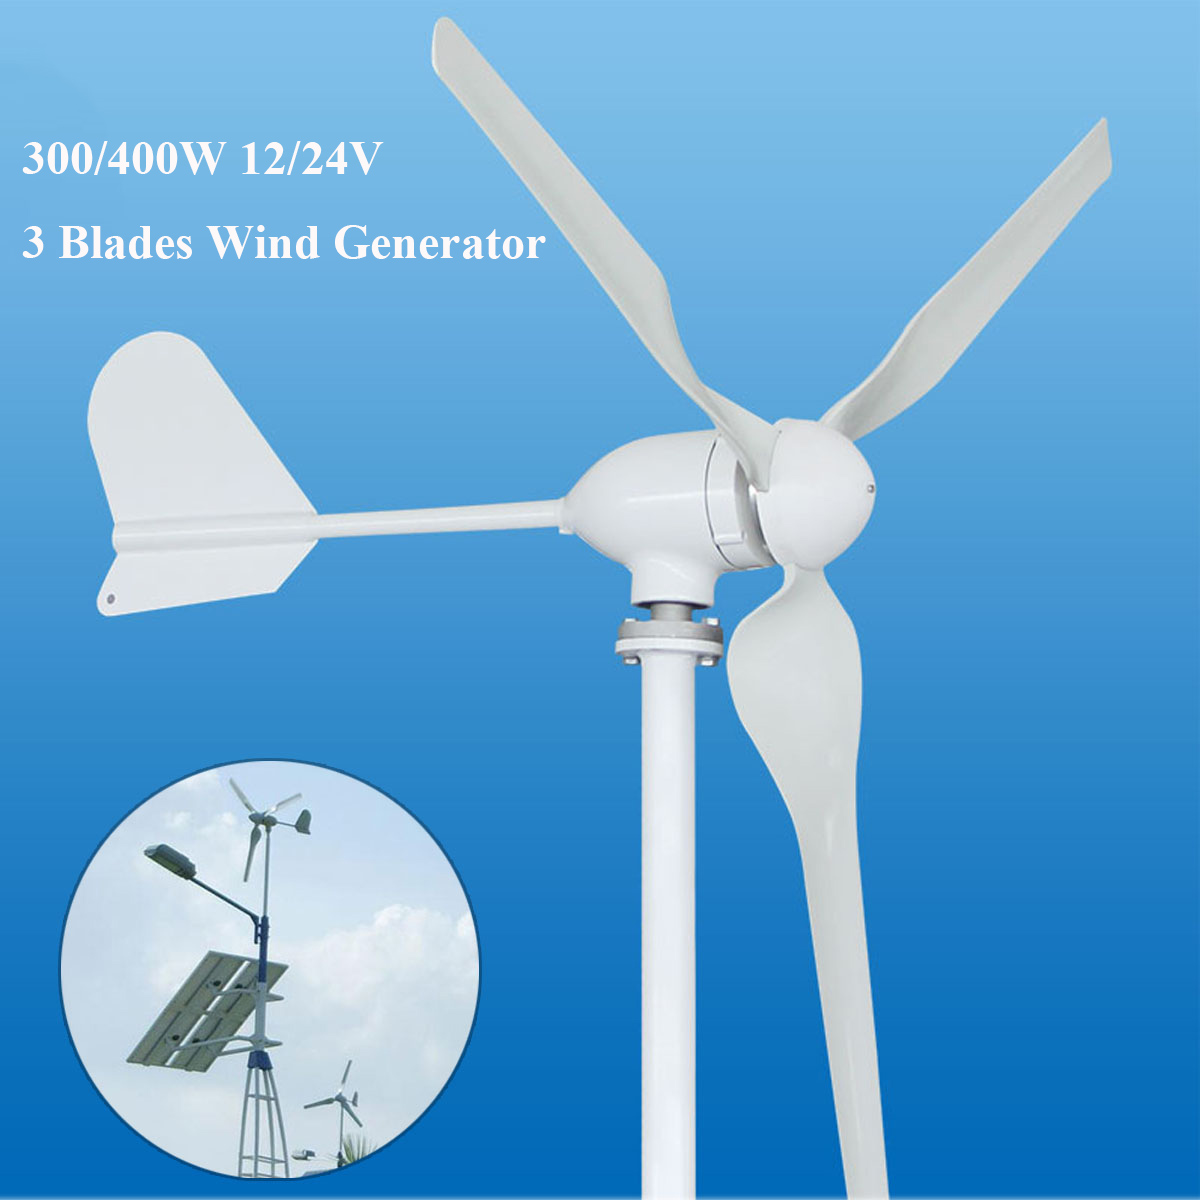 New Hot Sale 300/400W 12/24V M3 Wind Generator Automatic Adjustable Generator Fit For Home Or Marine Power Supply muqgew 2017 new hot sale bg1510b 1 24